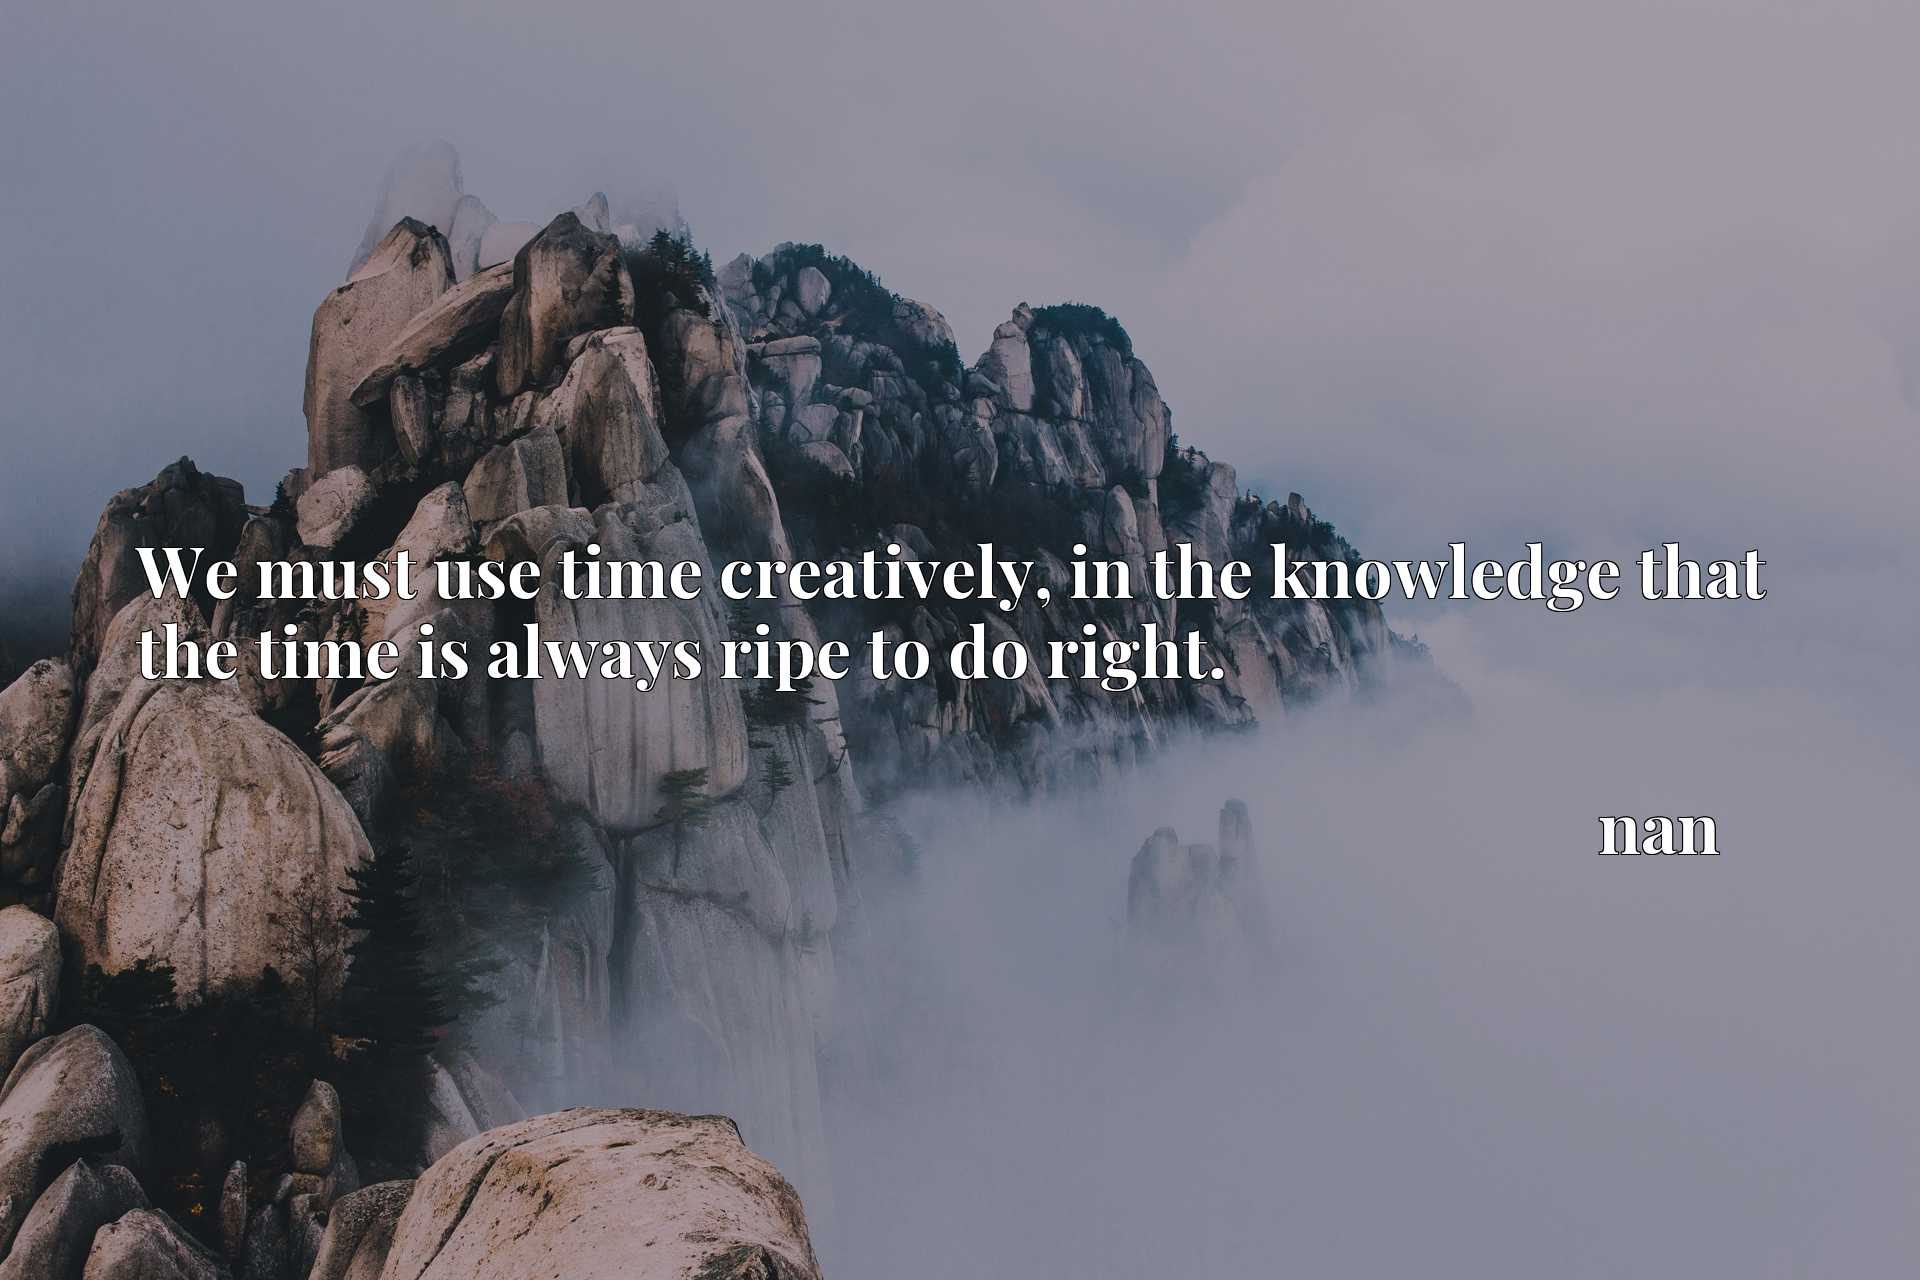 We must use time creatively, in the knowledge that the time is always ripe to do right.